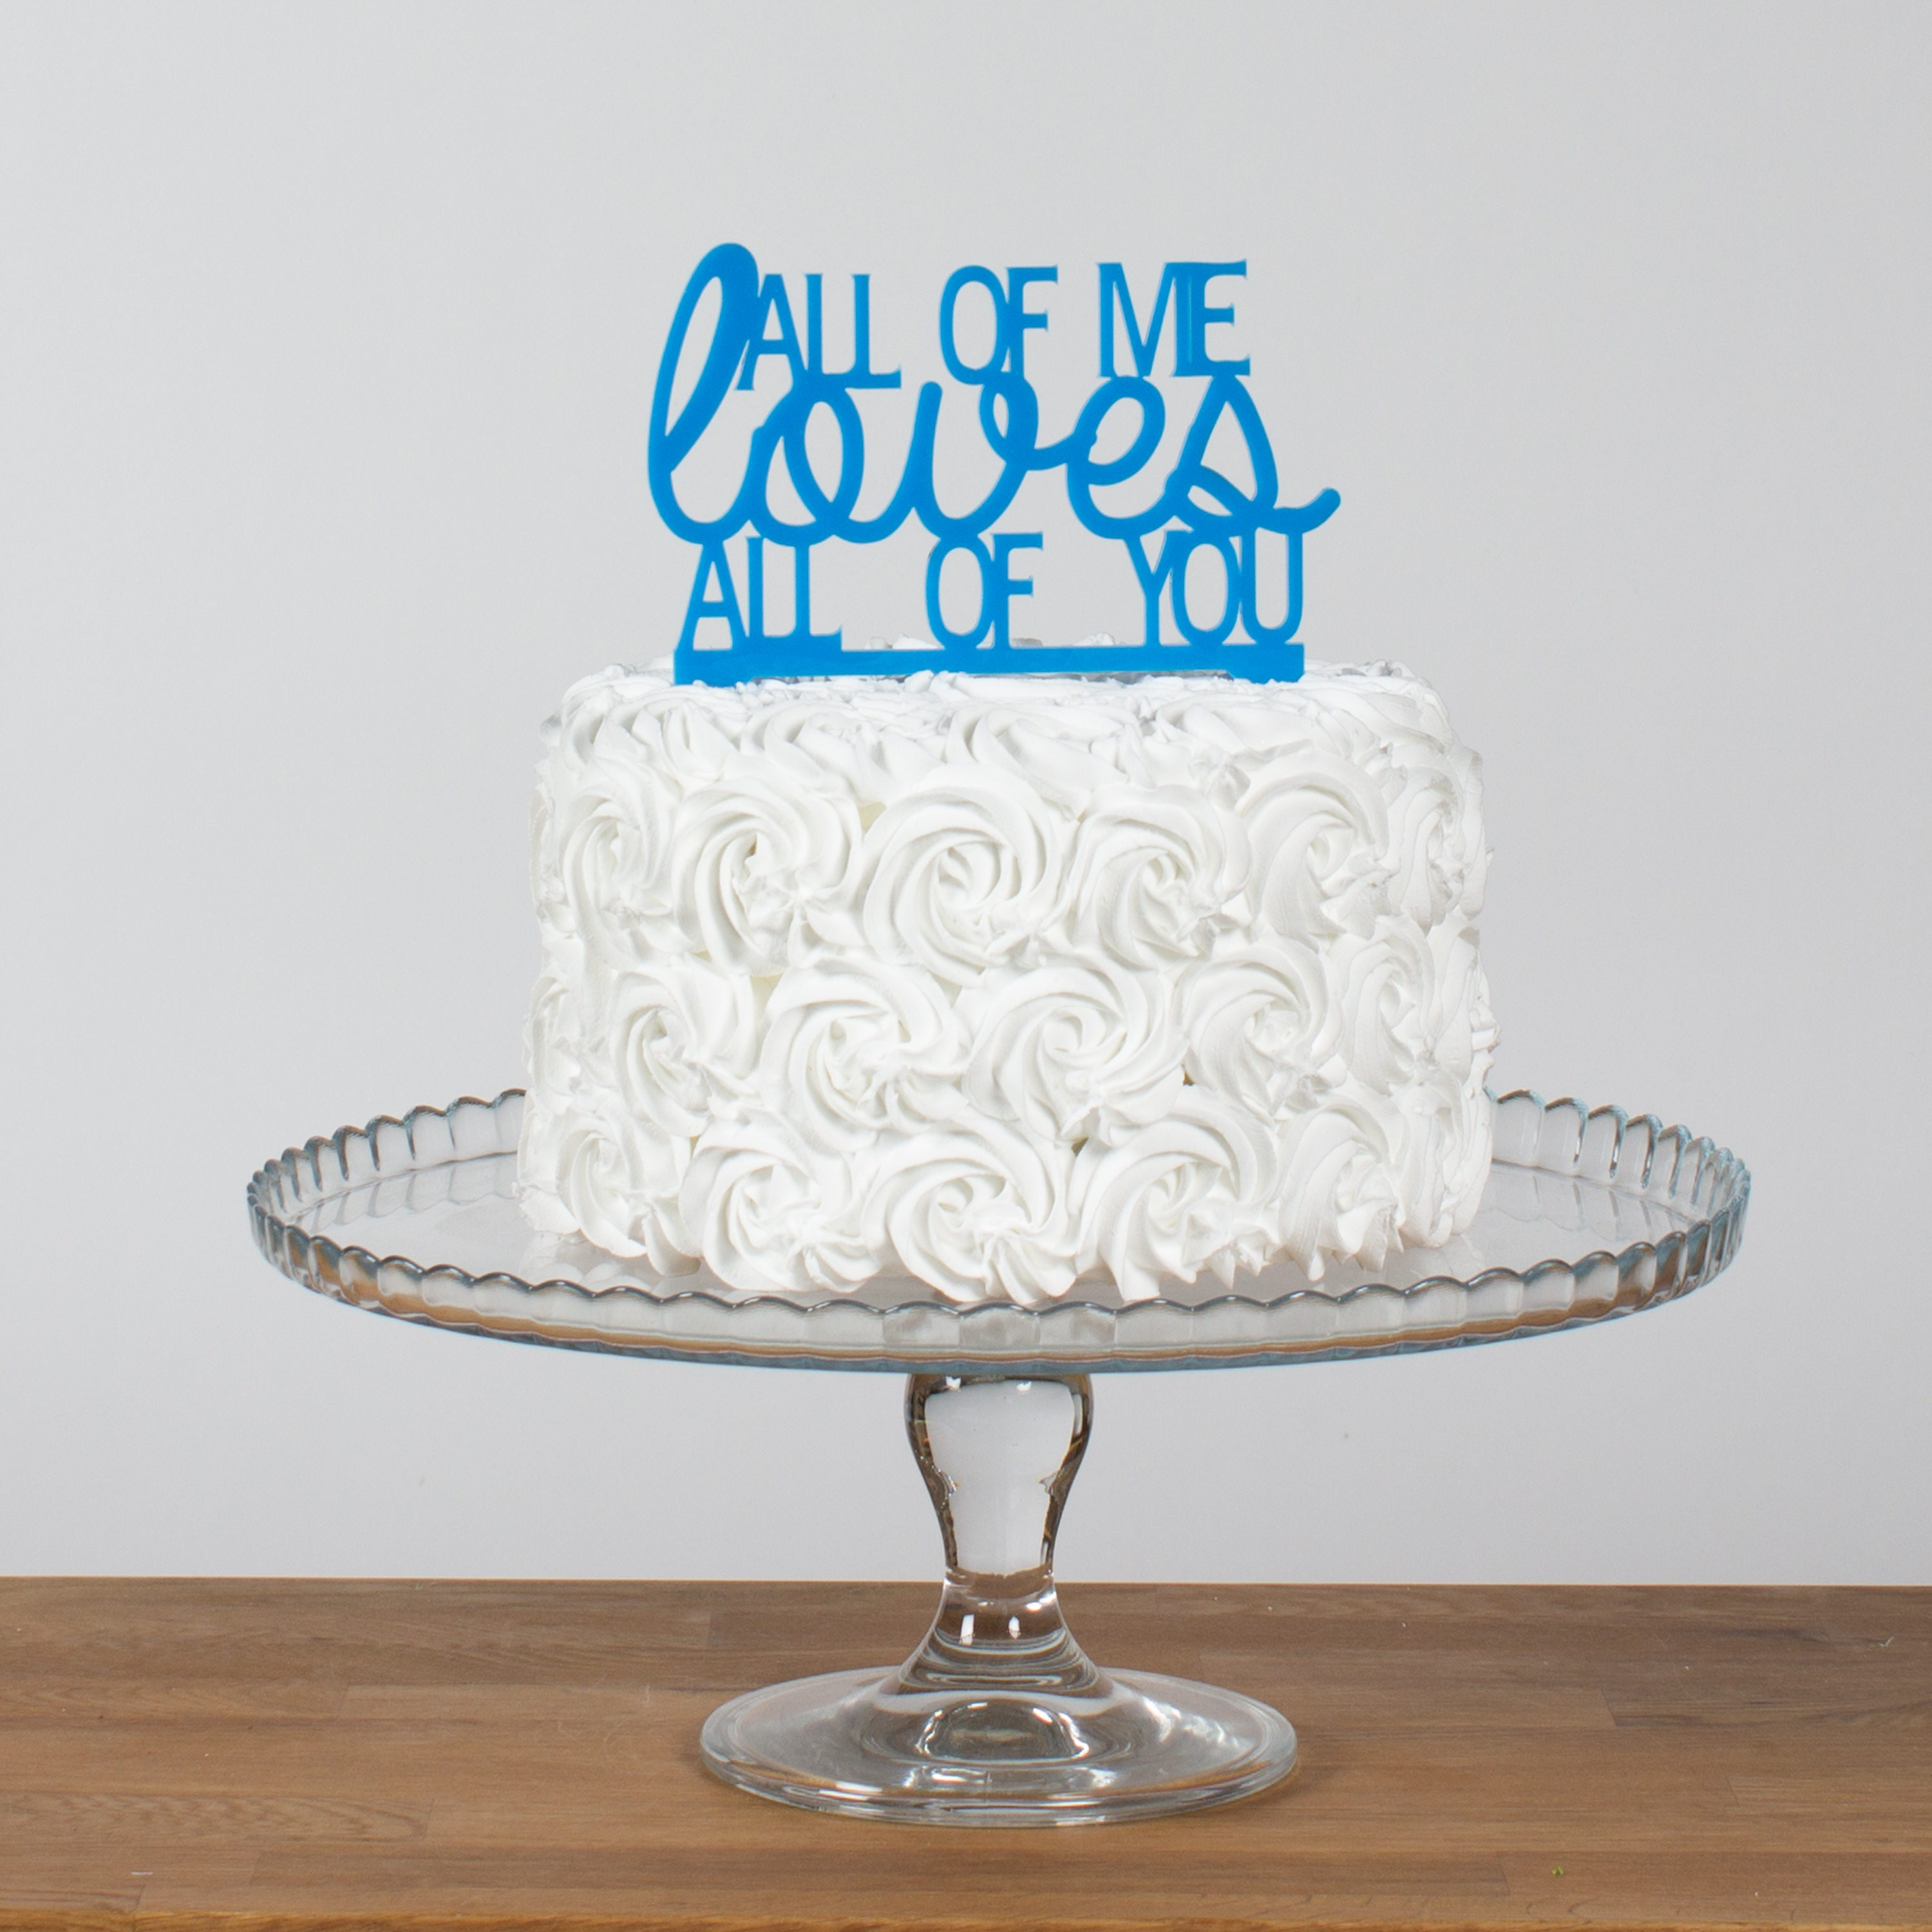 Wedding Cake Toppers Quotes: All Of Me Loves All Of You Quote Cake Topper Wedding Cake